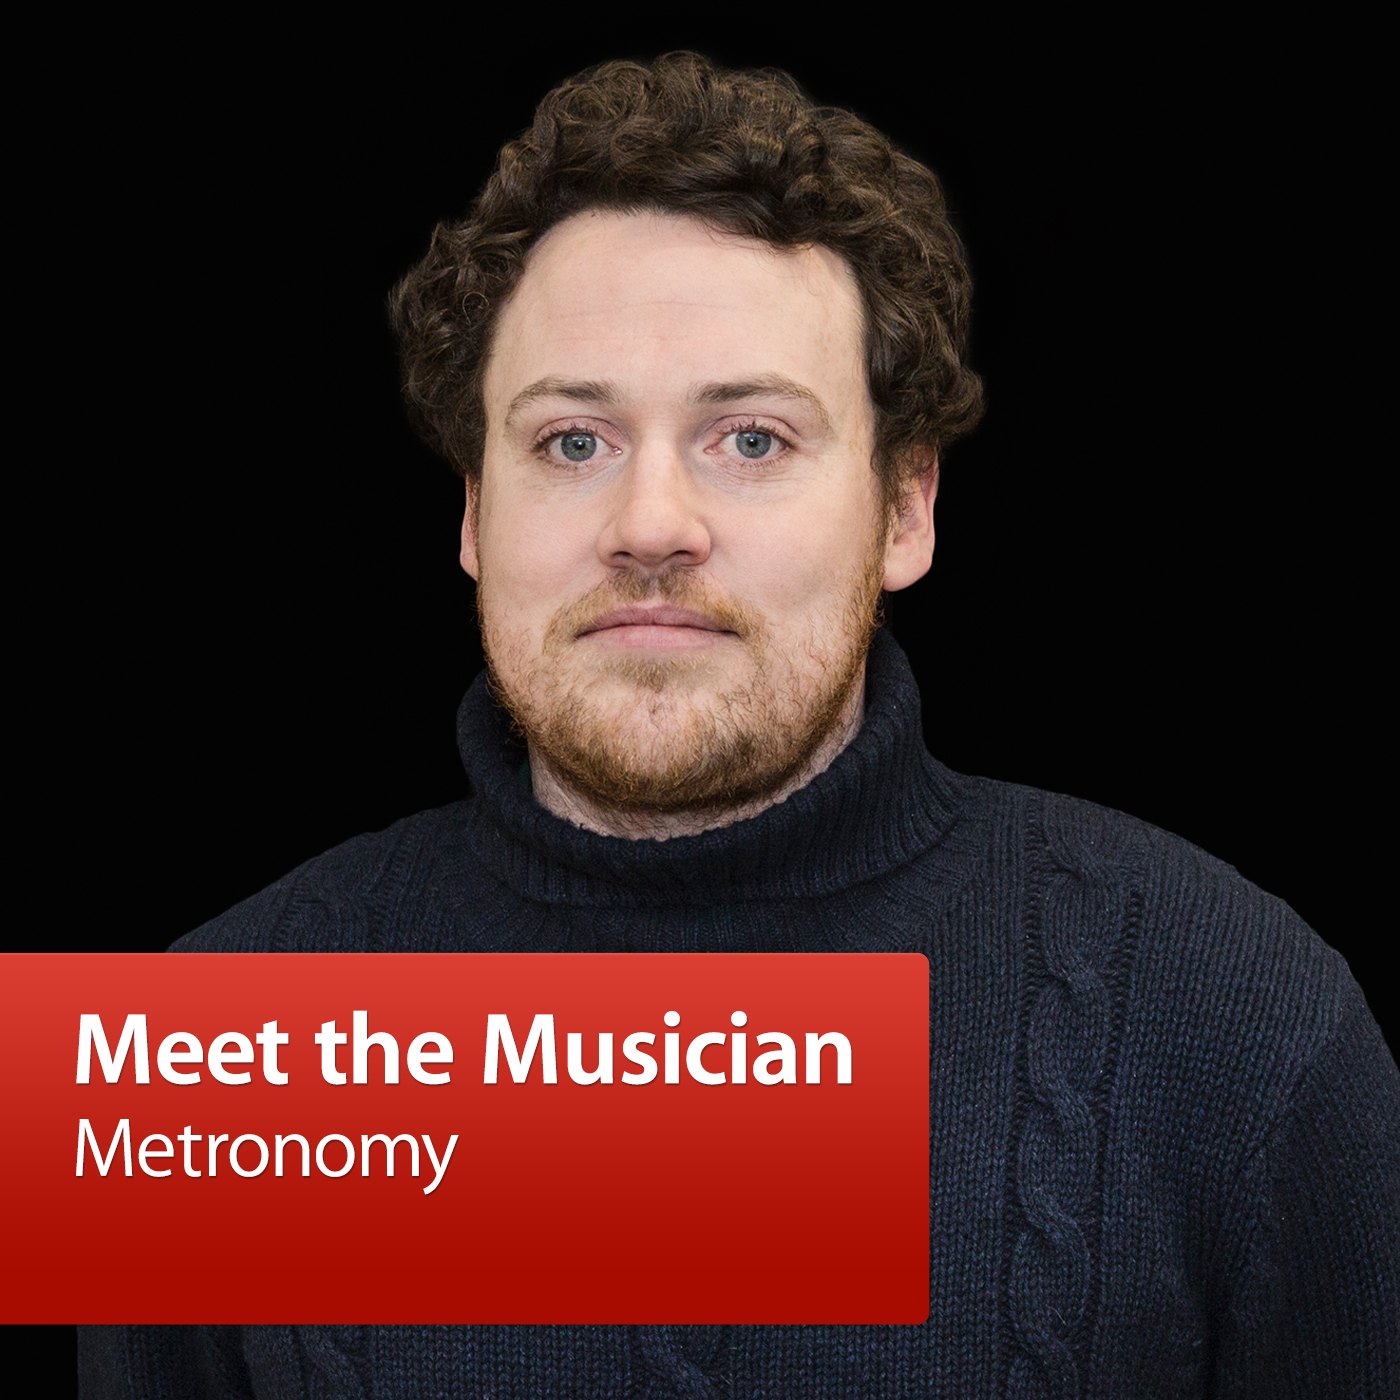 Metronomy: Meet the Musician